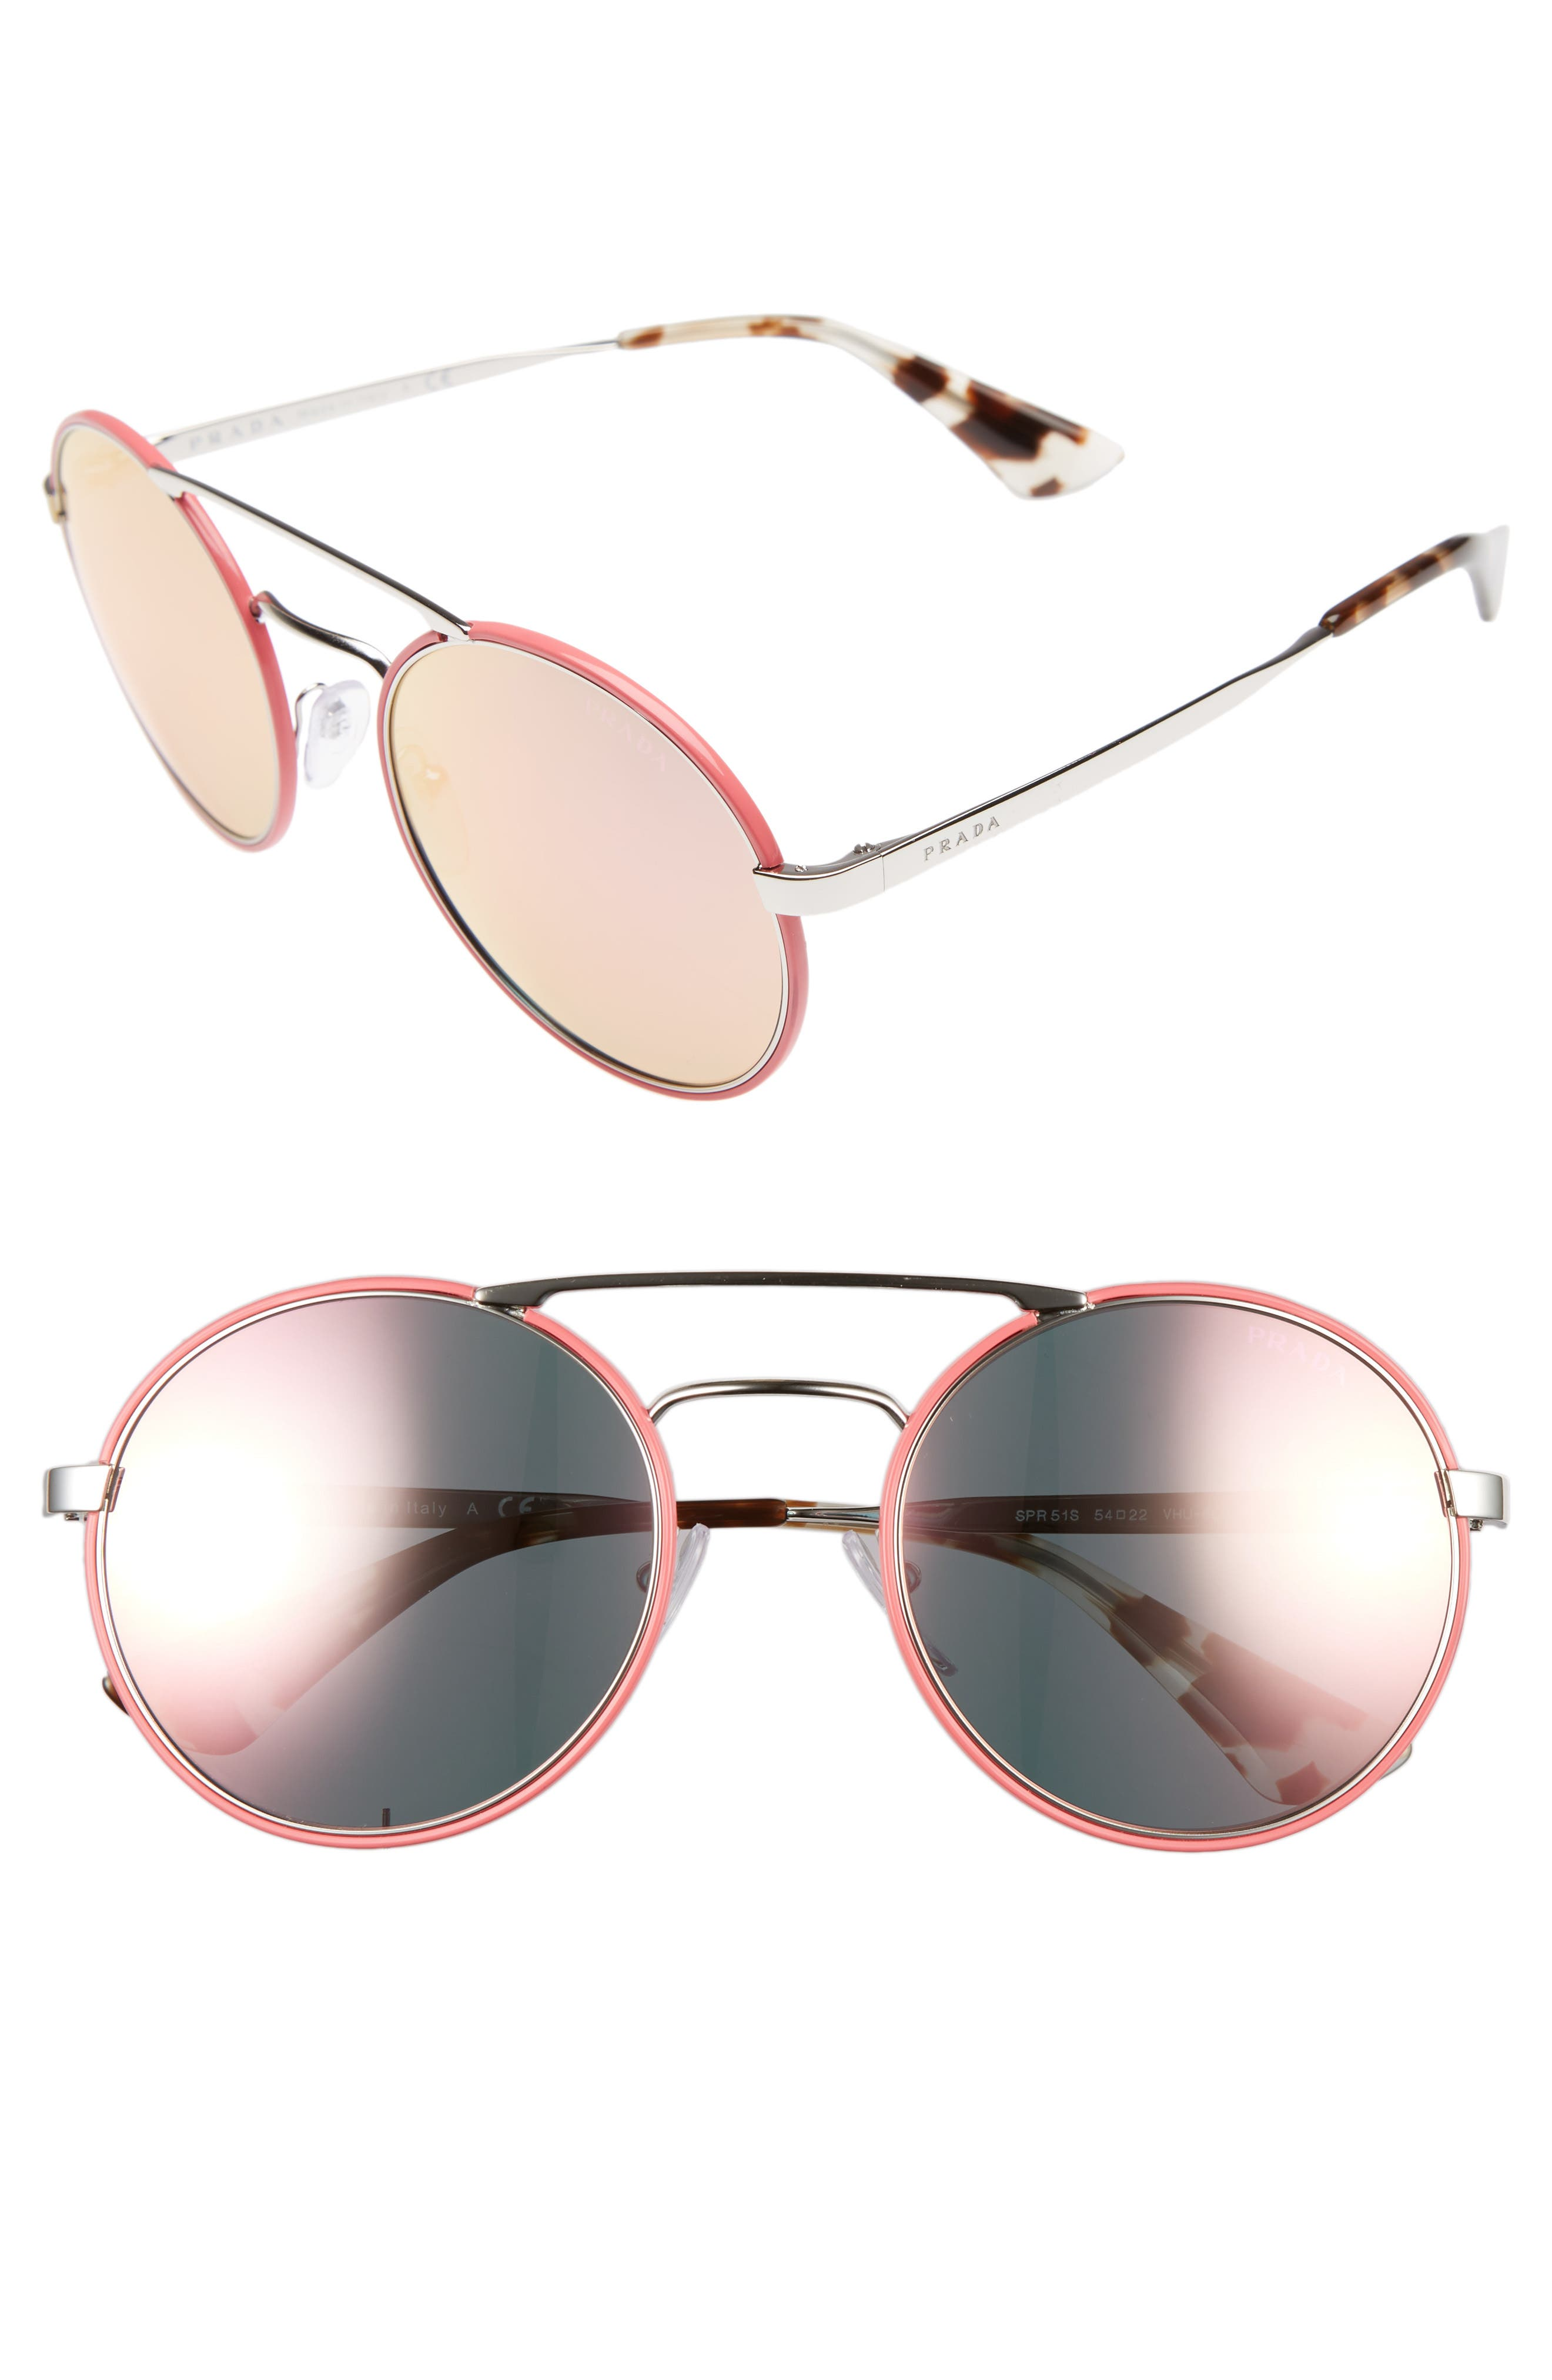 54mm Round Sunglasses,                         Main,                         color, Silver/ Pink